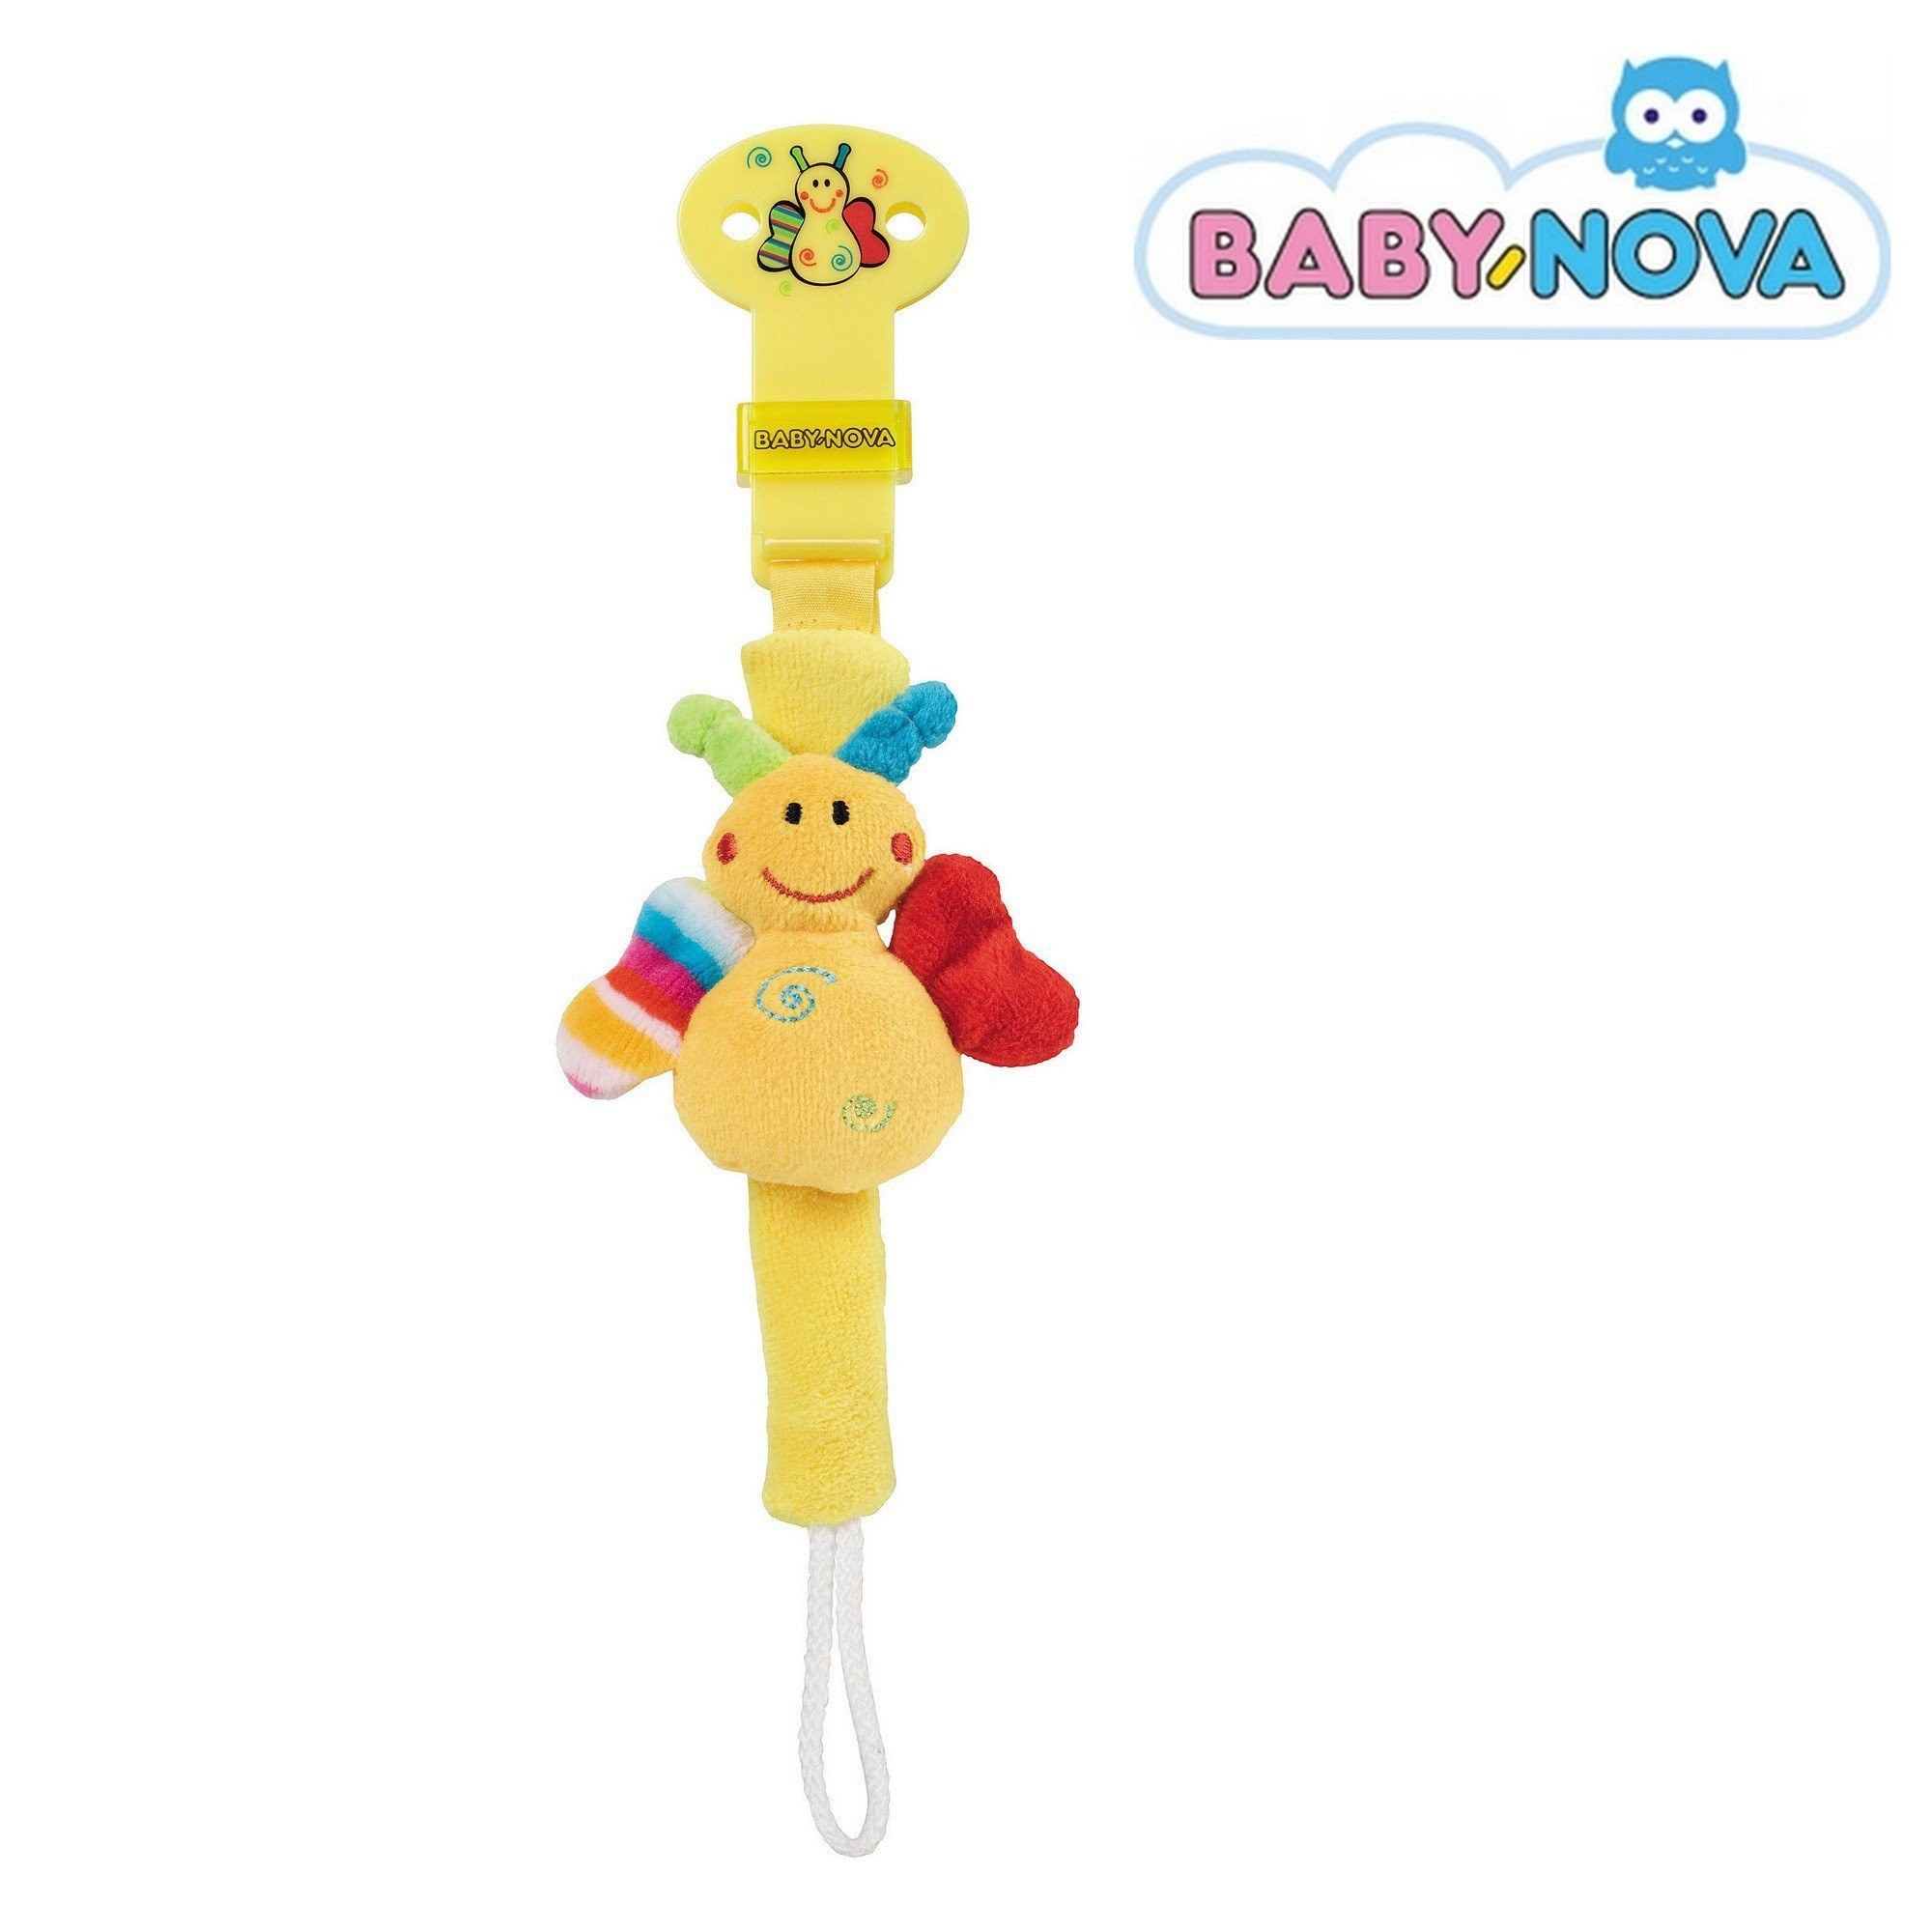 Baby Nova Pacifier Holder with Rattle - Butterfly